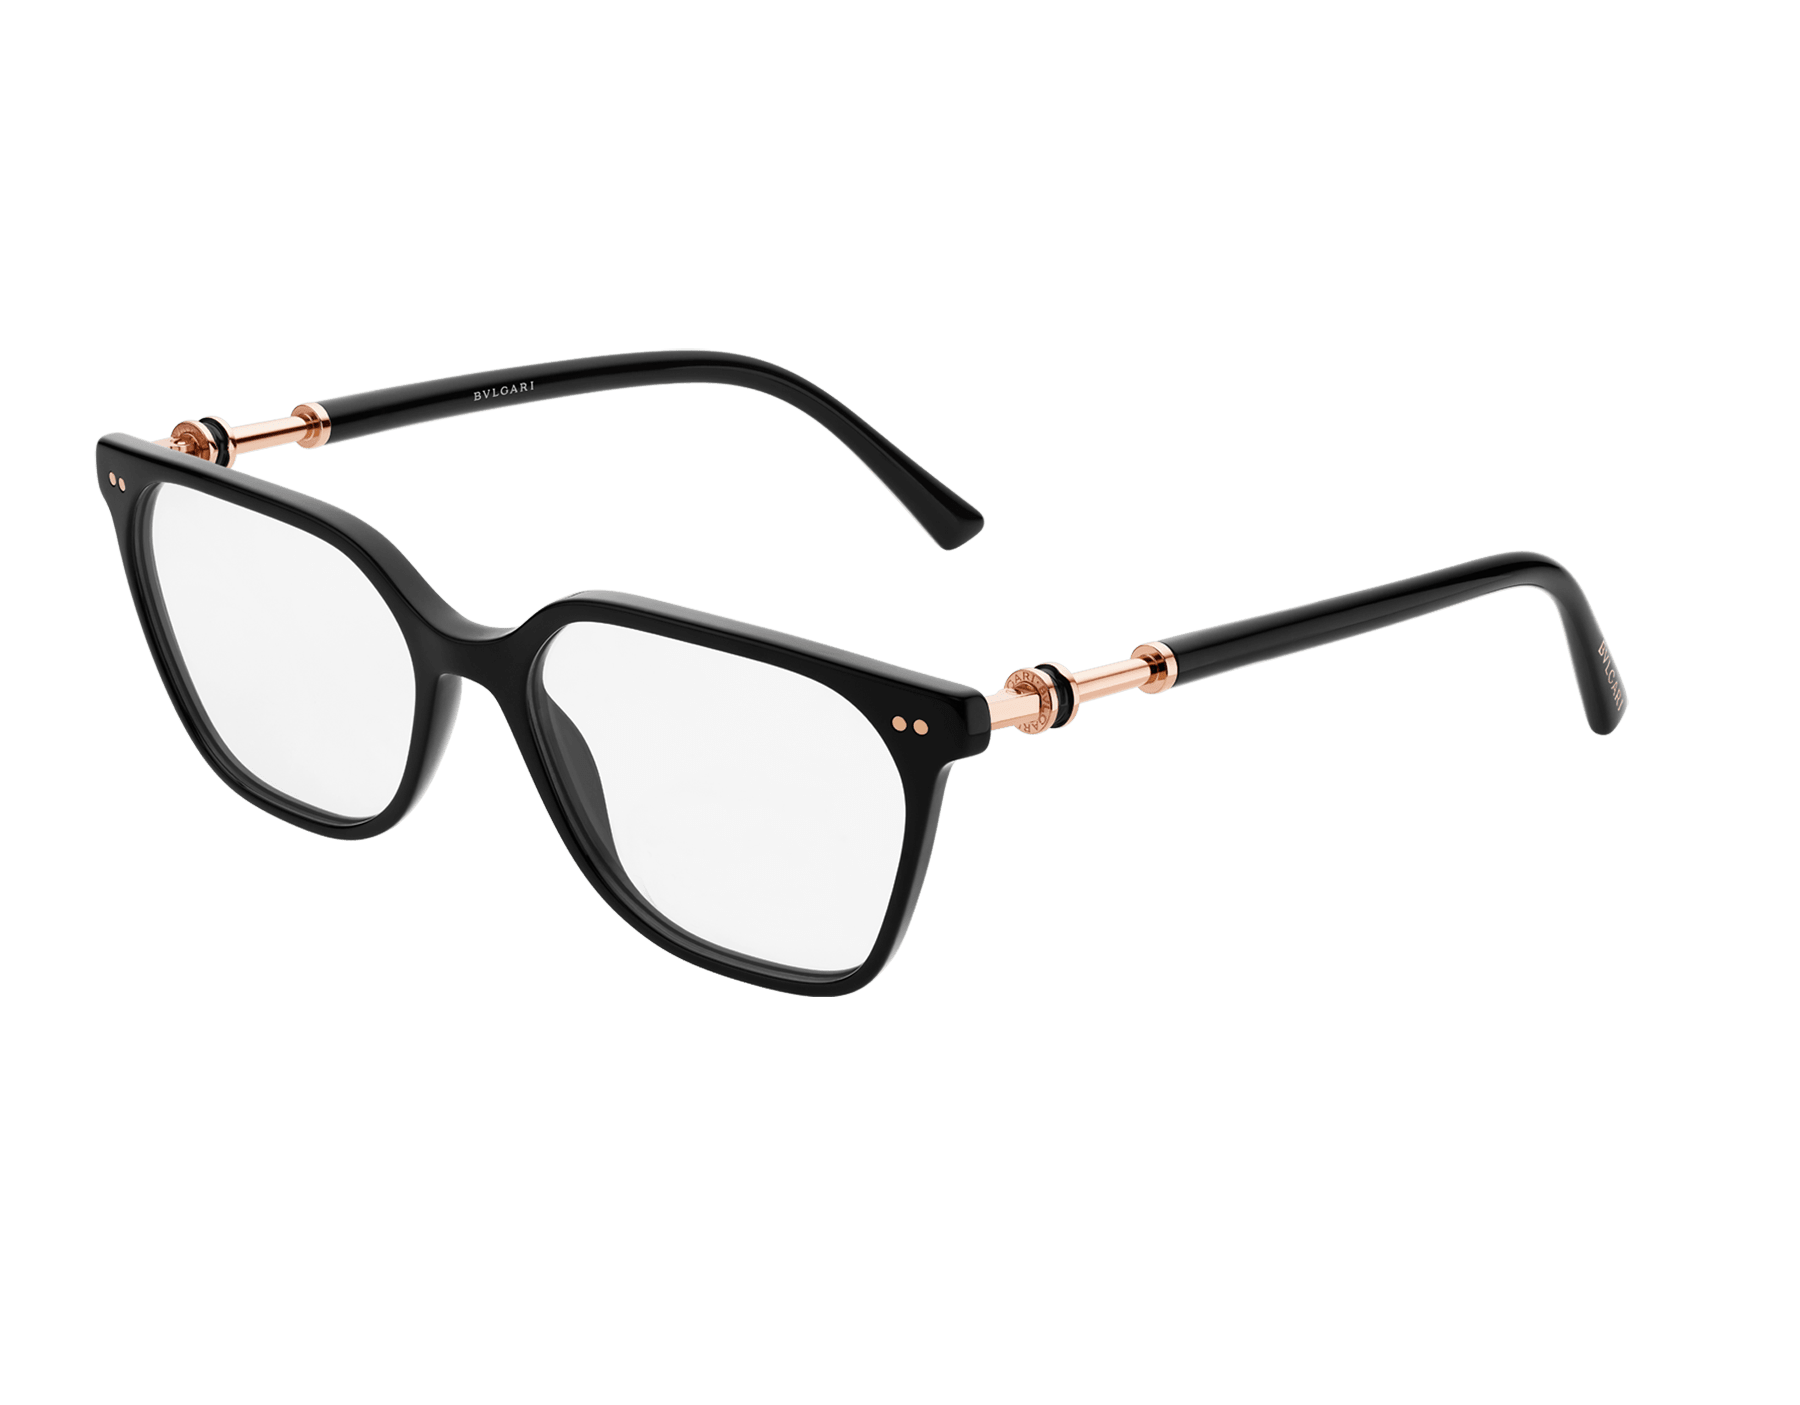 Bvlgari B.zero1 rectangular acetate glasses. 903874 image 1